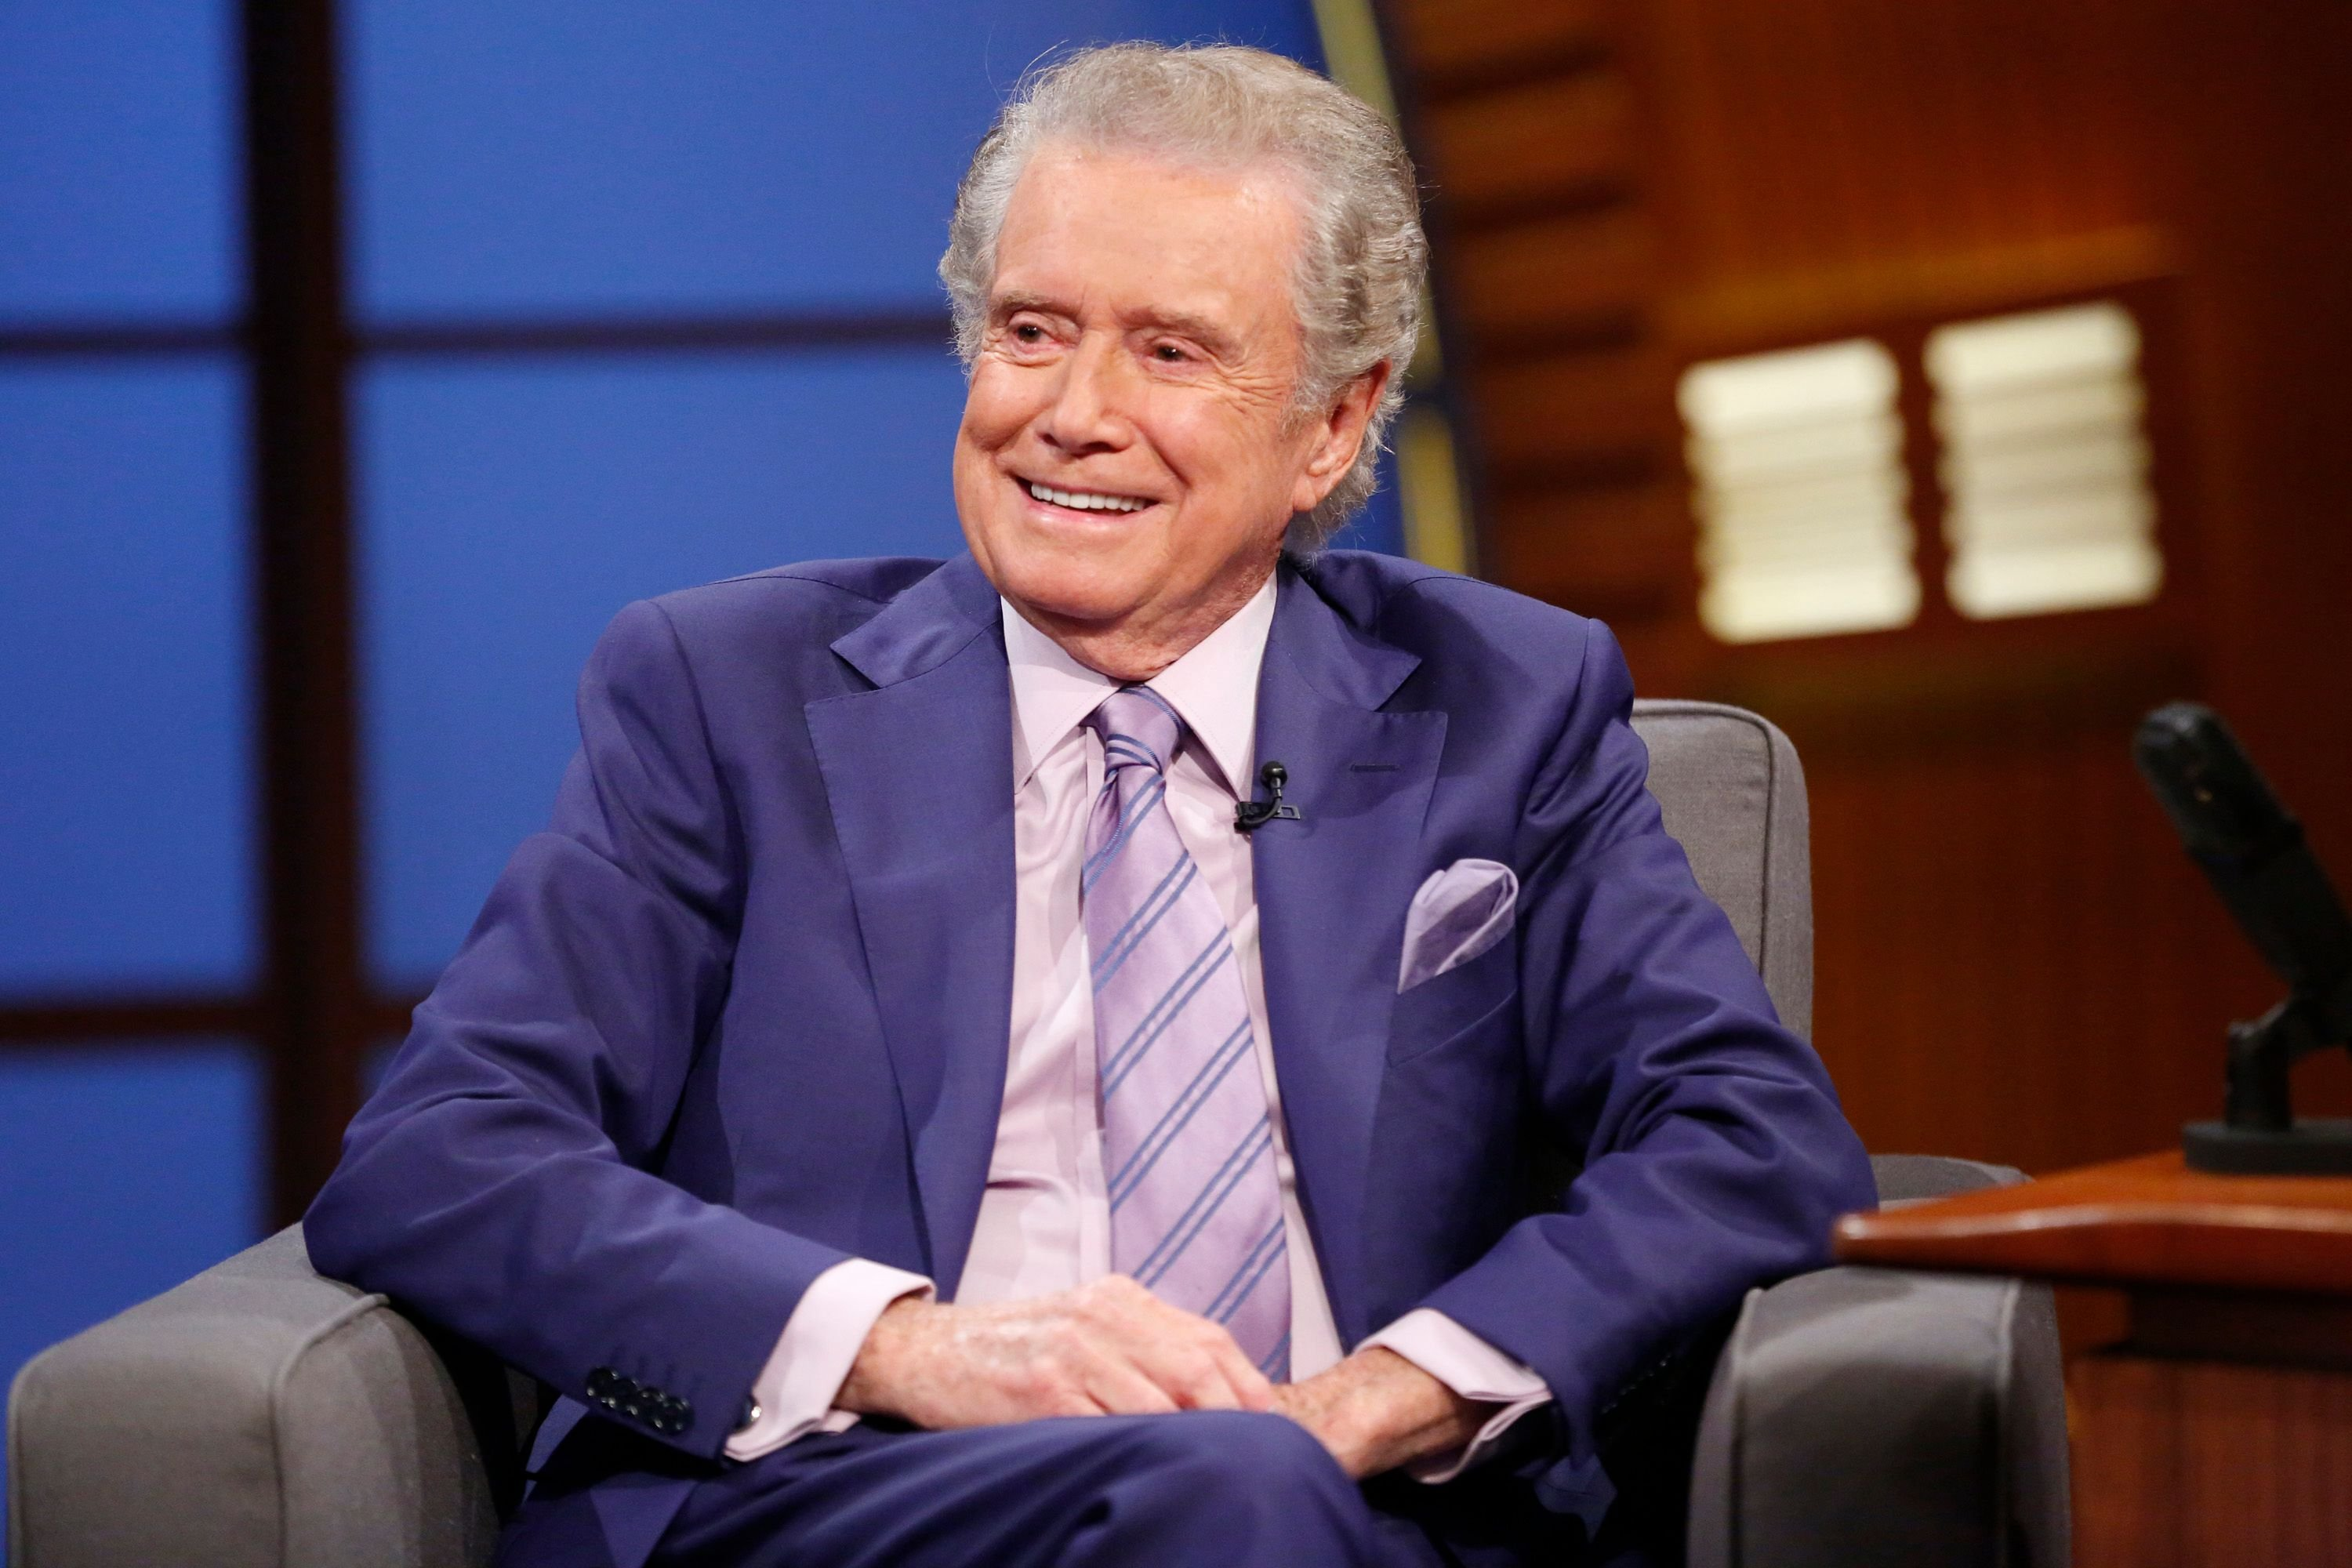 """Regis Philbin at an interview on """"Late Night with Seth Meyers"""" on July 16, 2014 